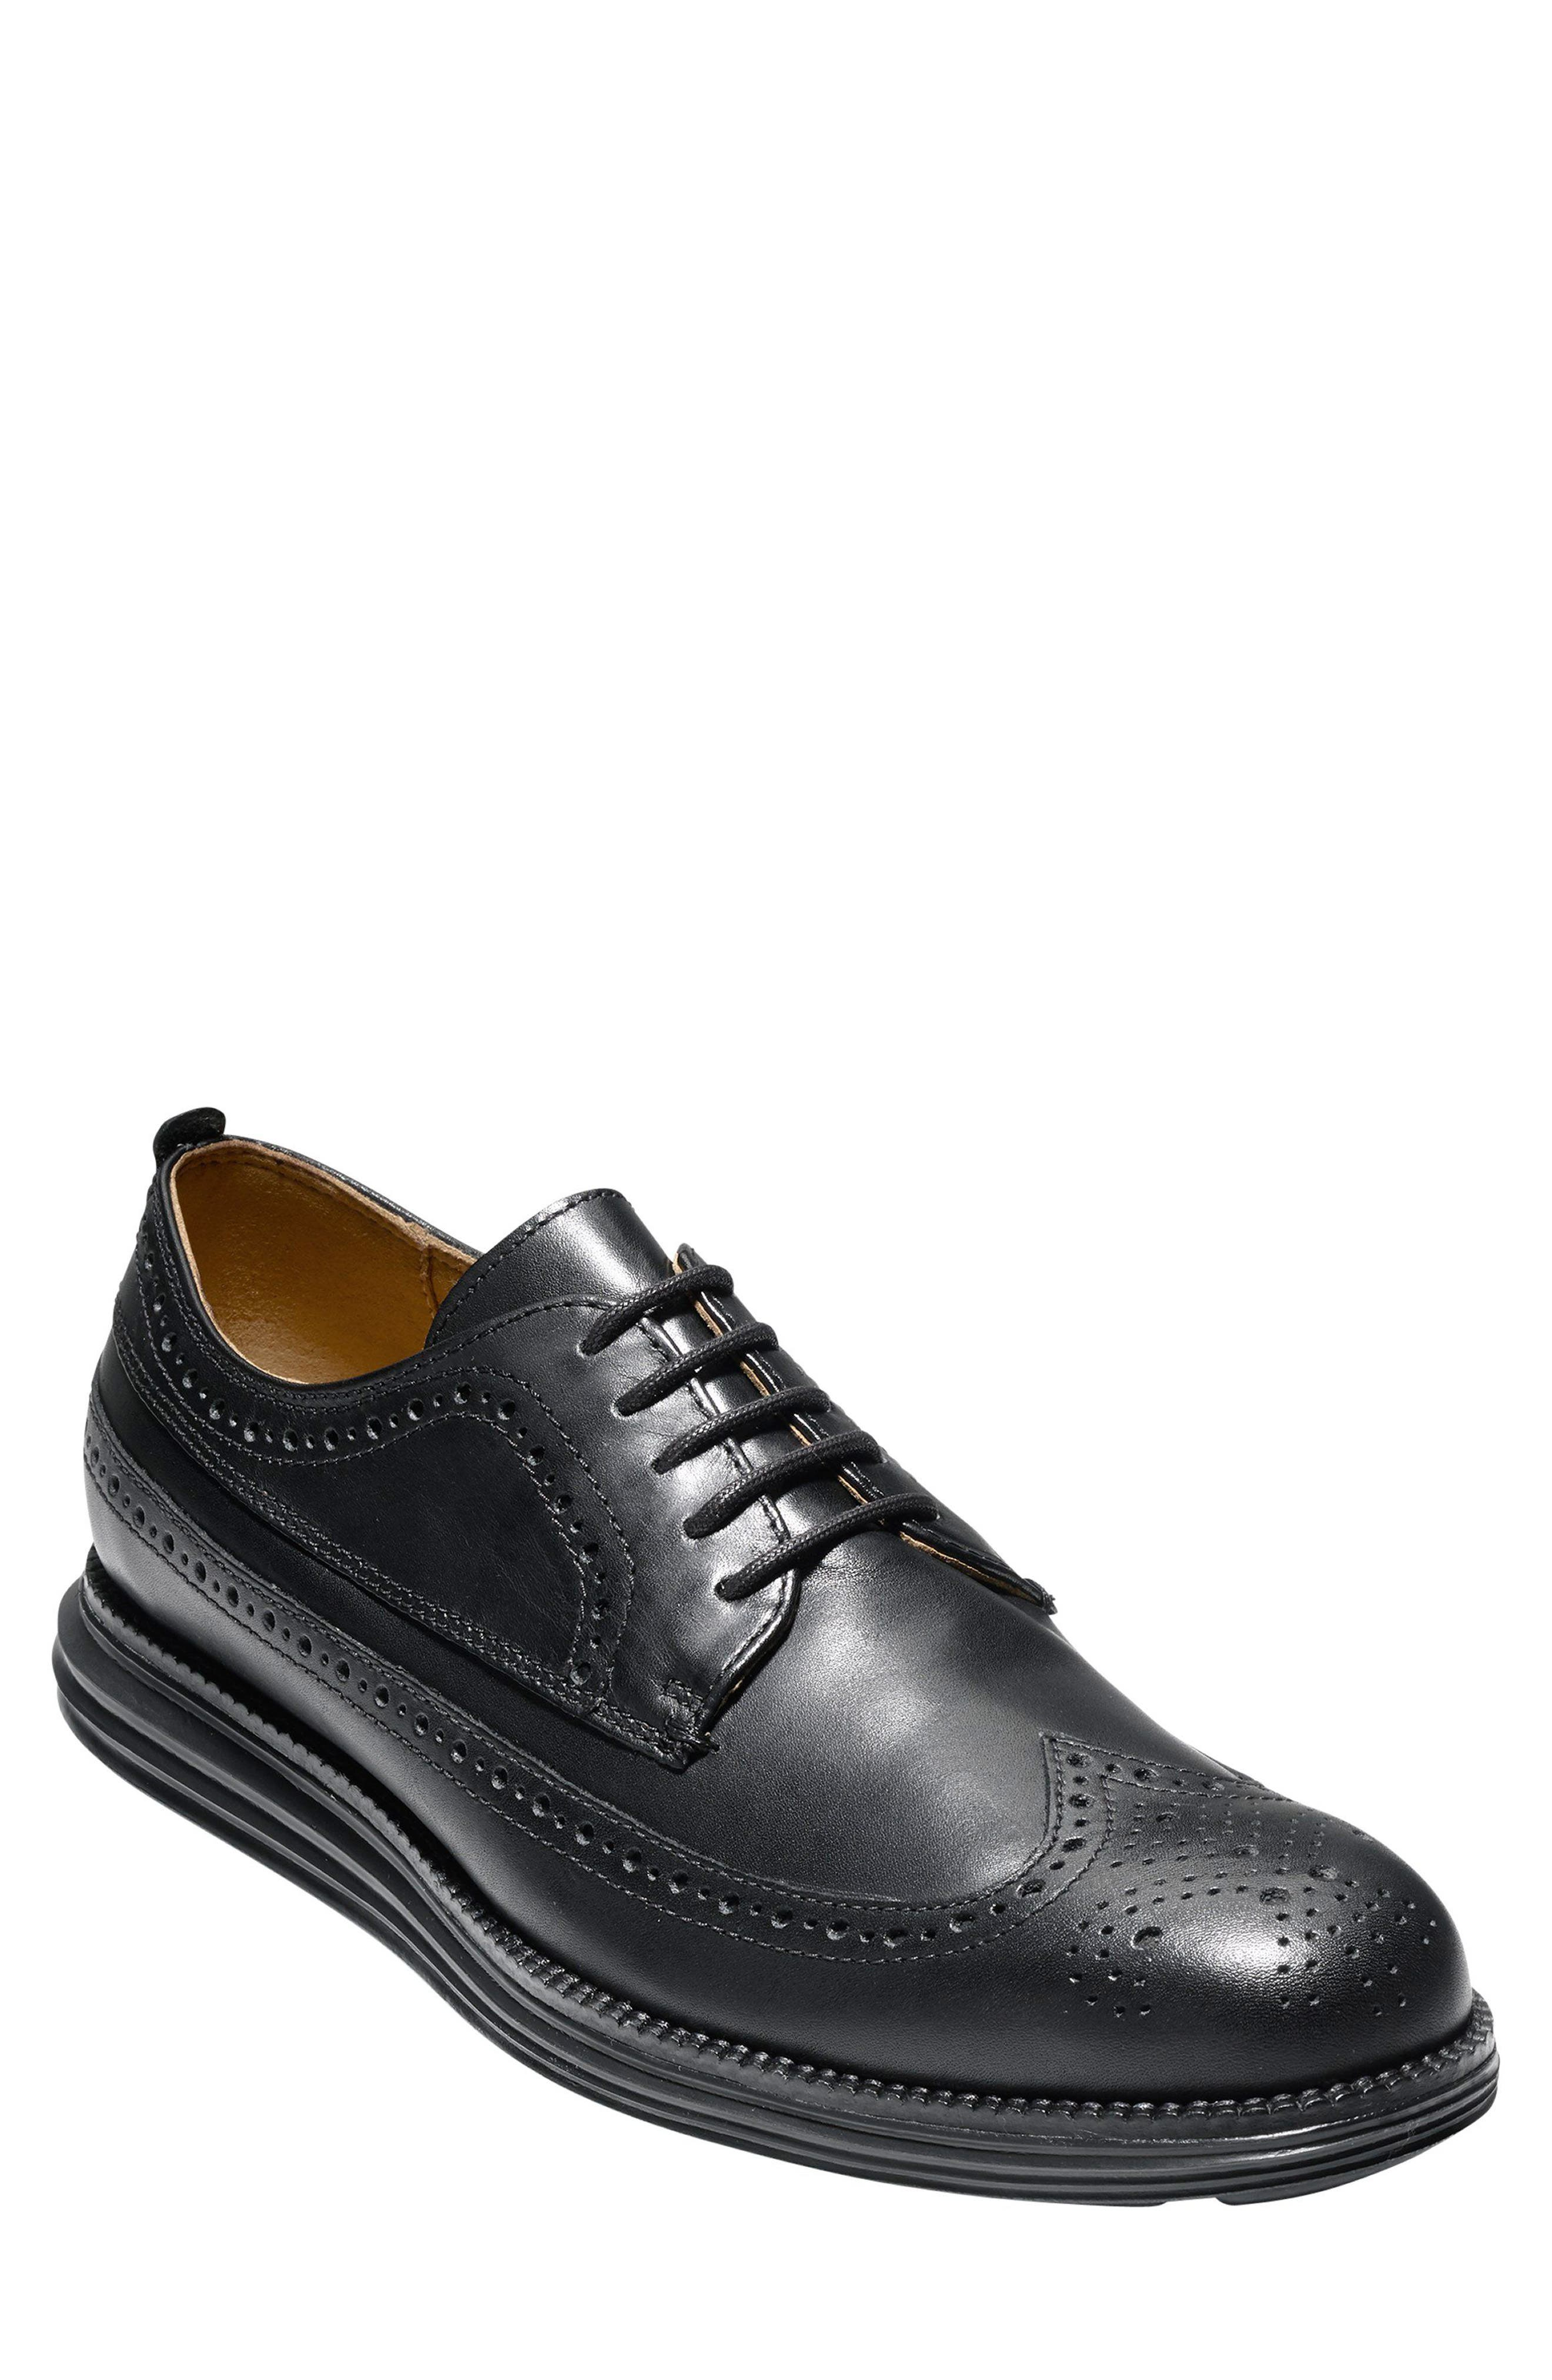 COLE HAAN 'Original Grand' Wingtip Oxford